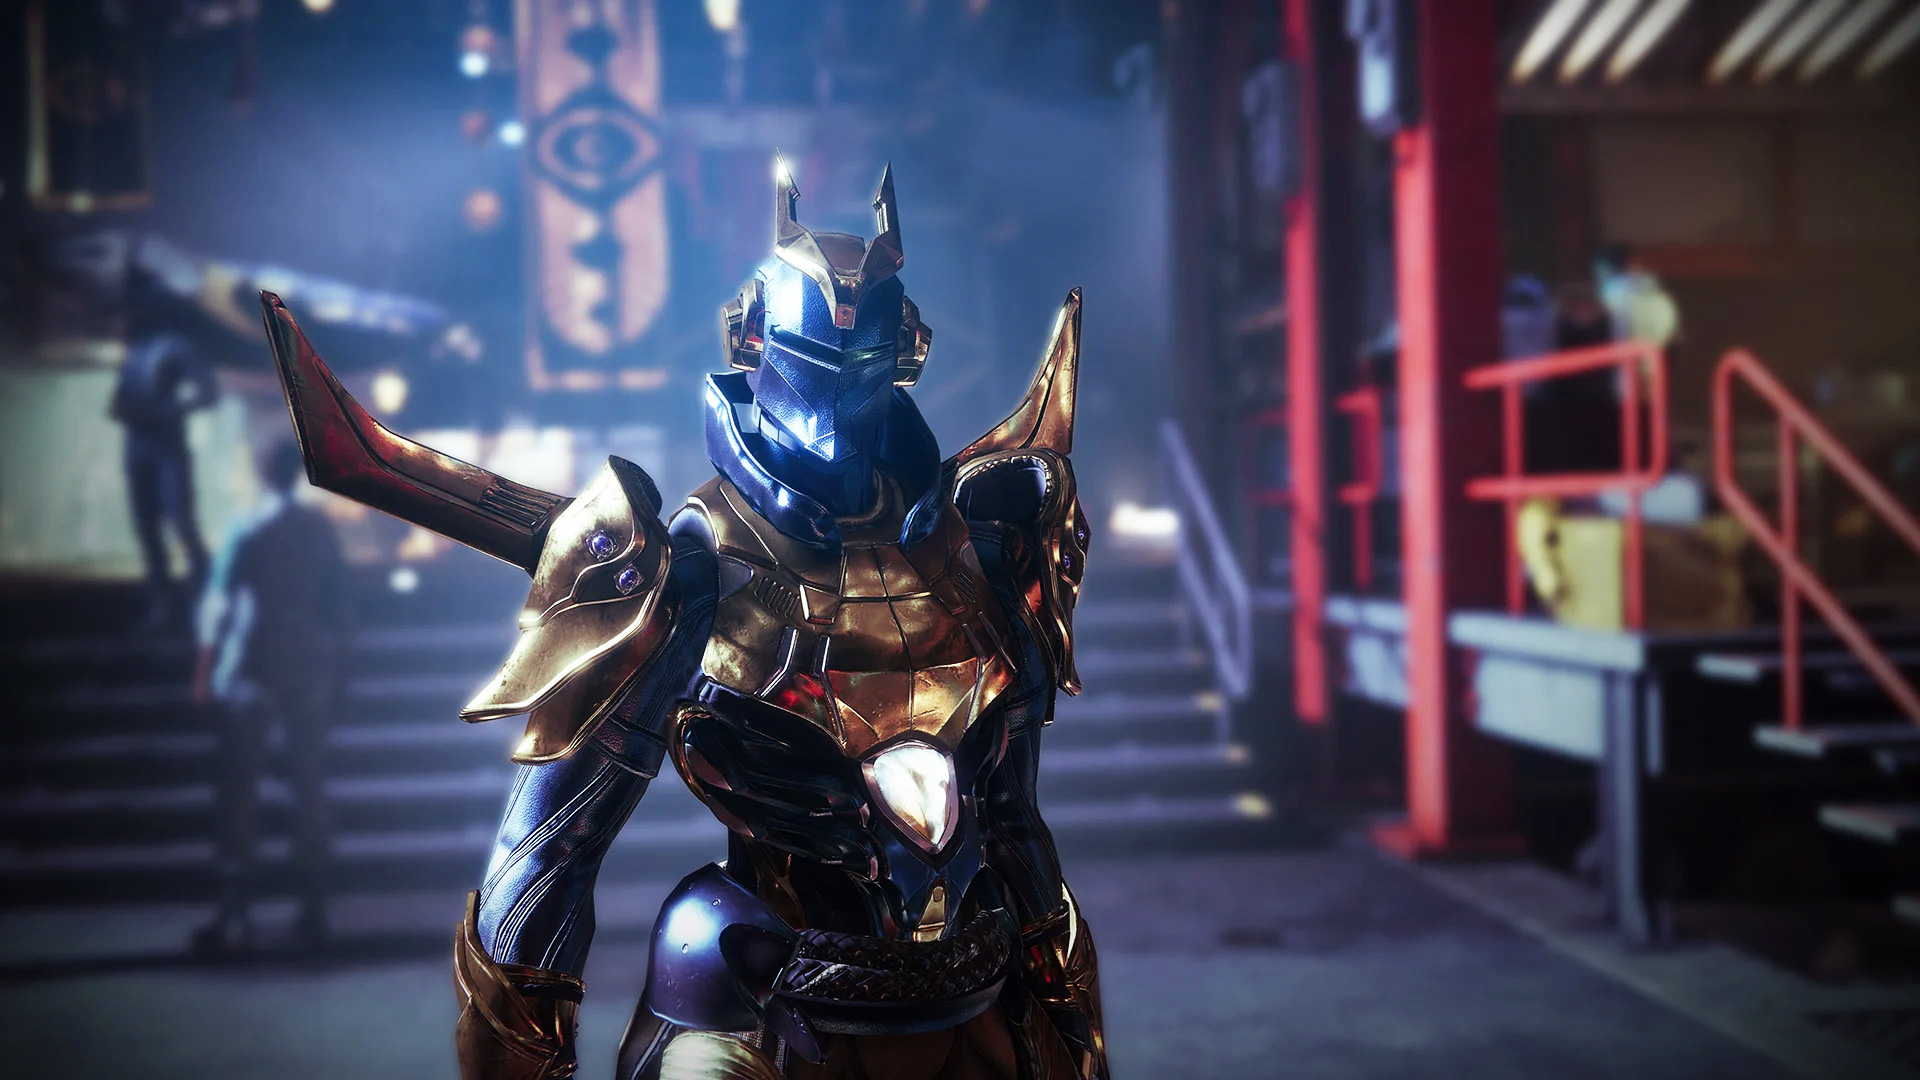 Destiny 2 Armor Synthesis – how to use the transmog feature